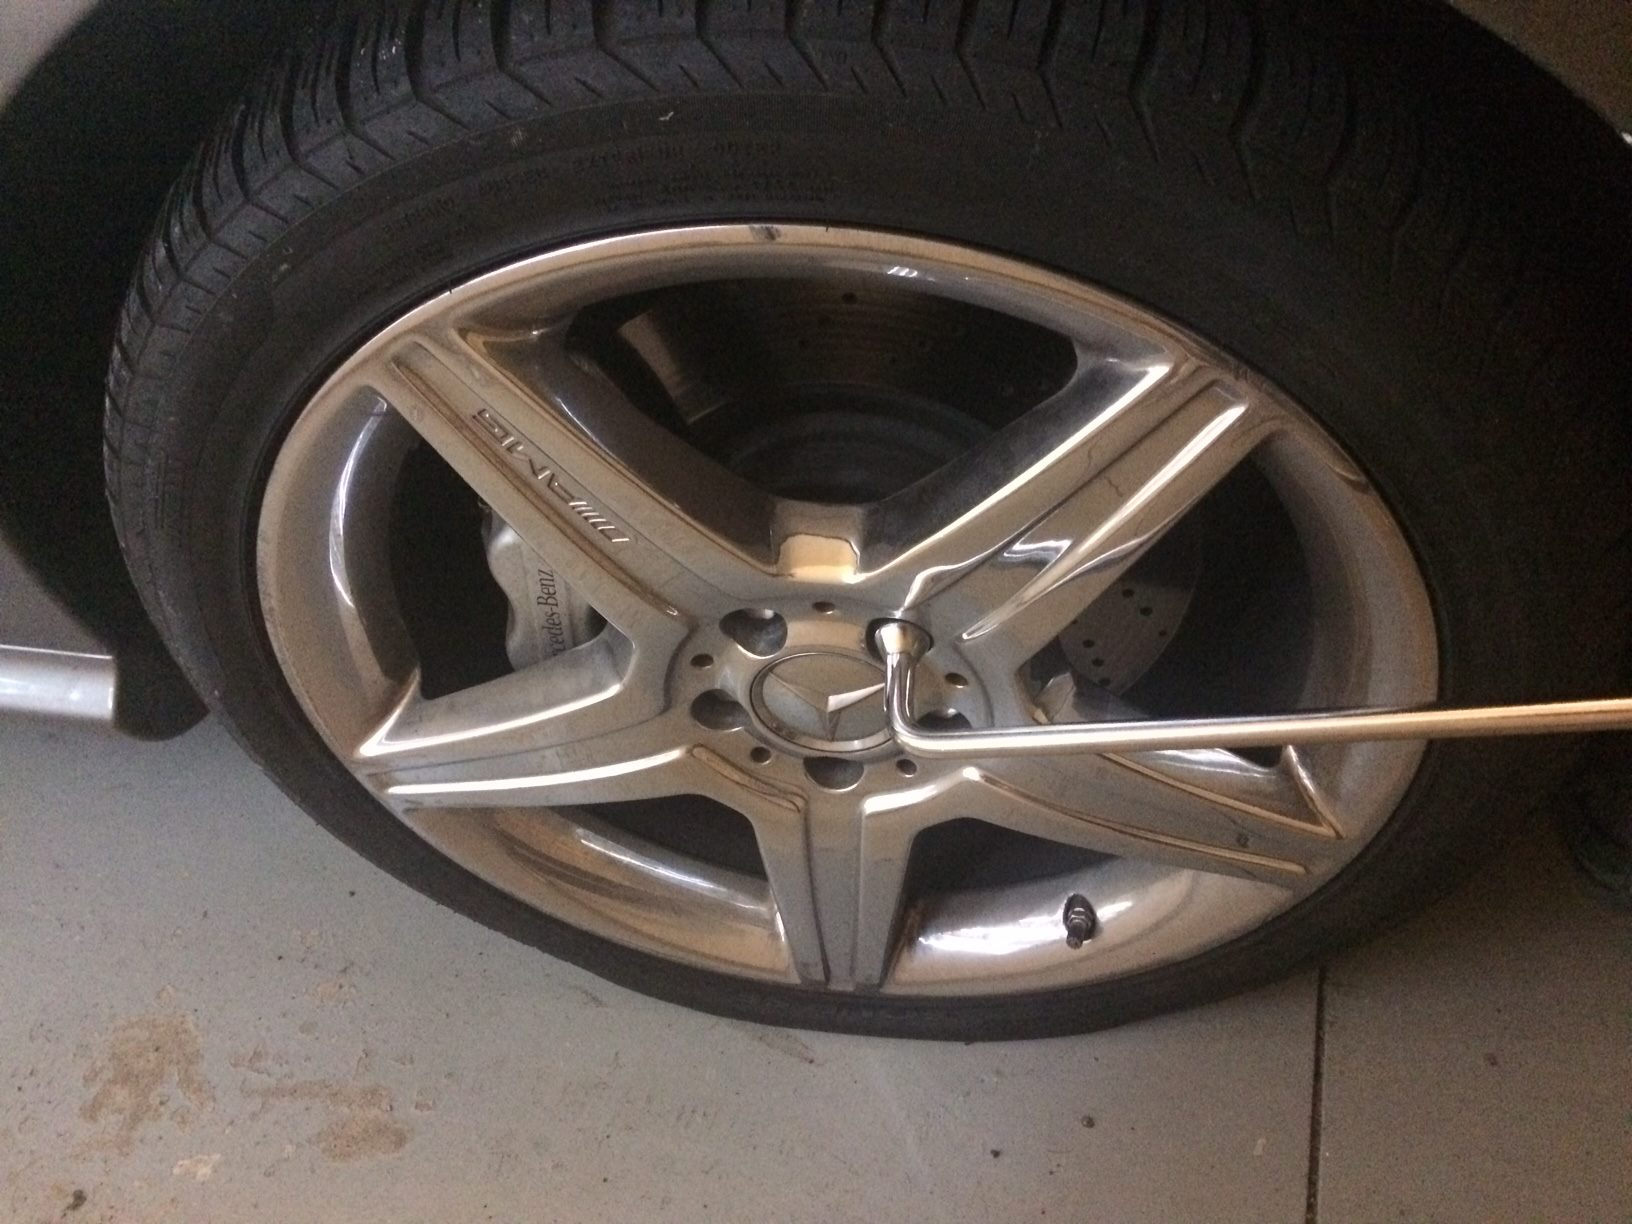 Hardships: Changing a flat tire. Mercedes Benz S550 AMG